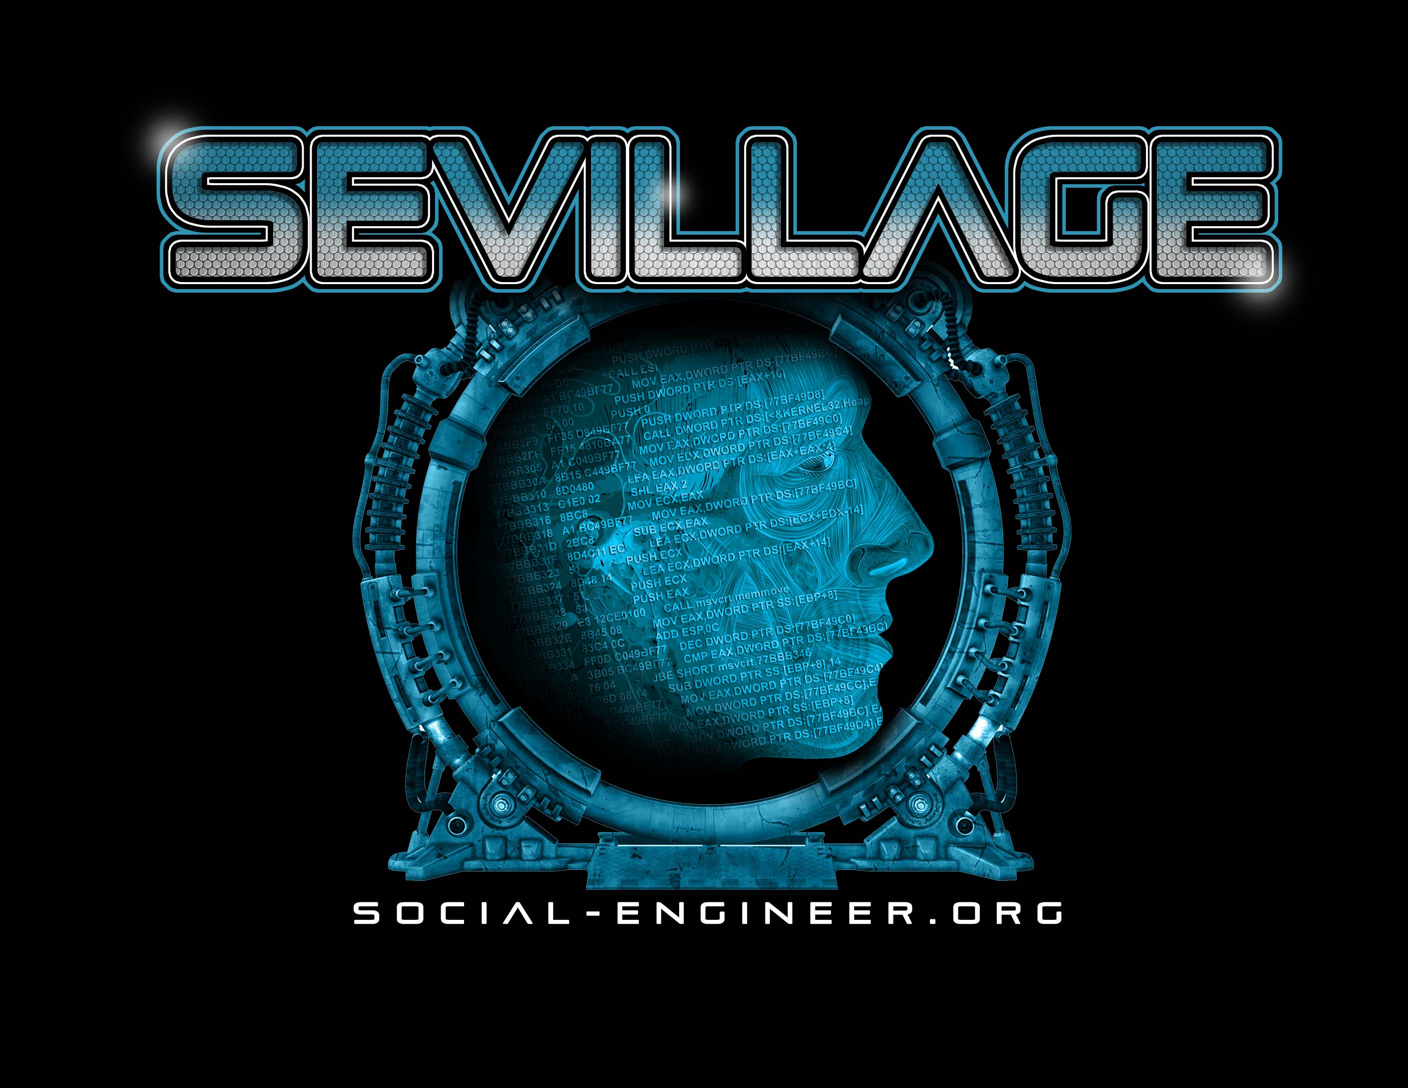 SEVillage at DEF CON